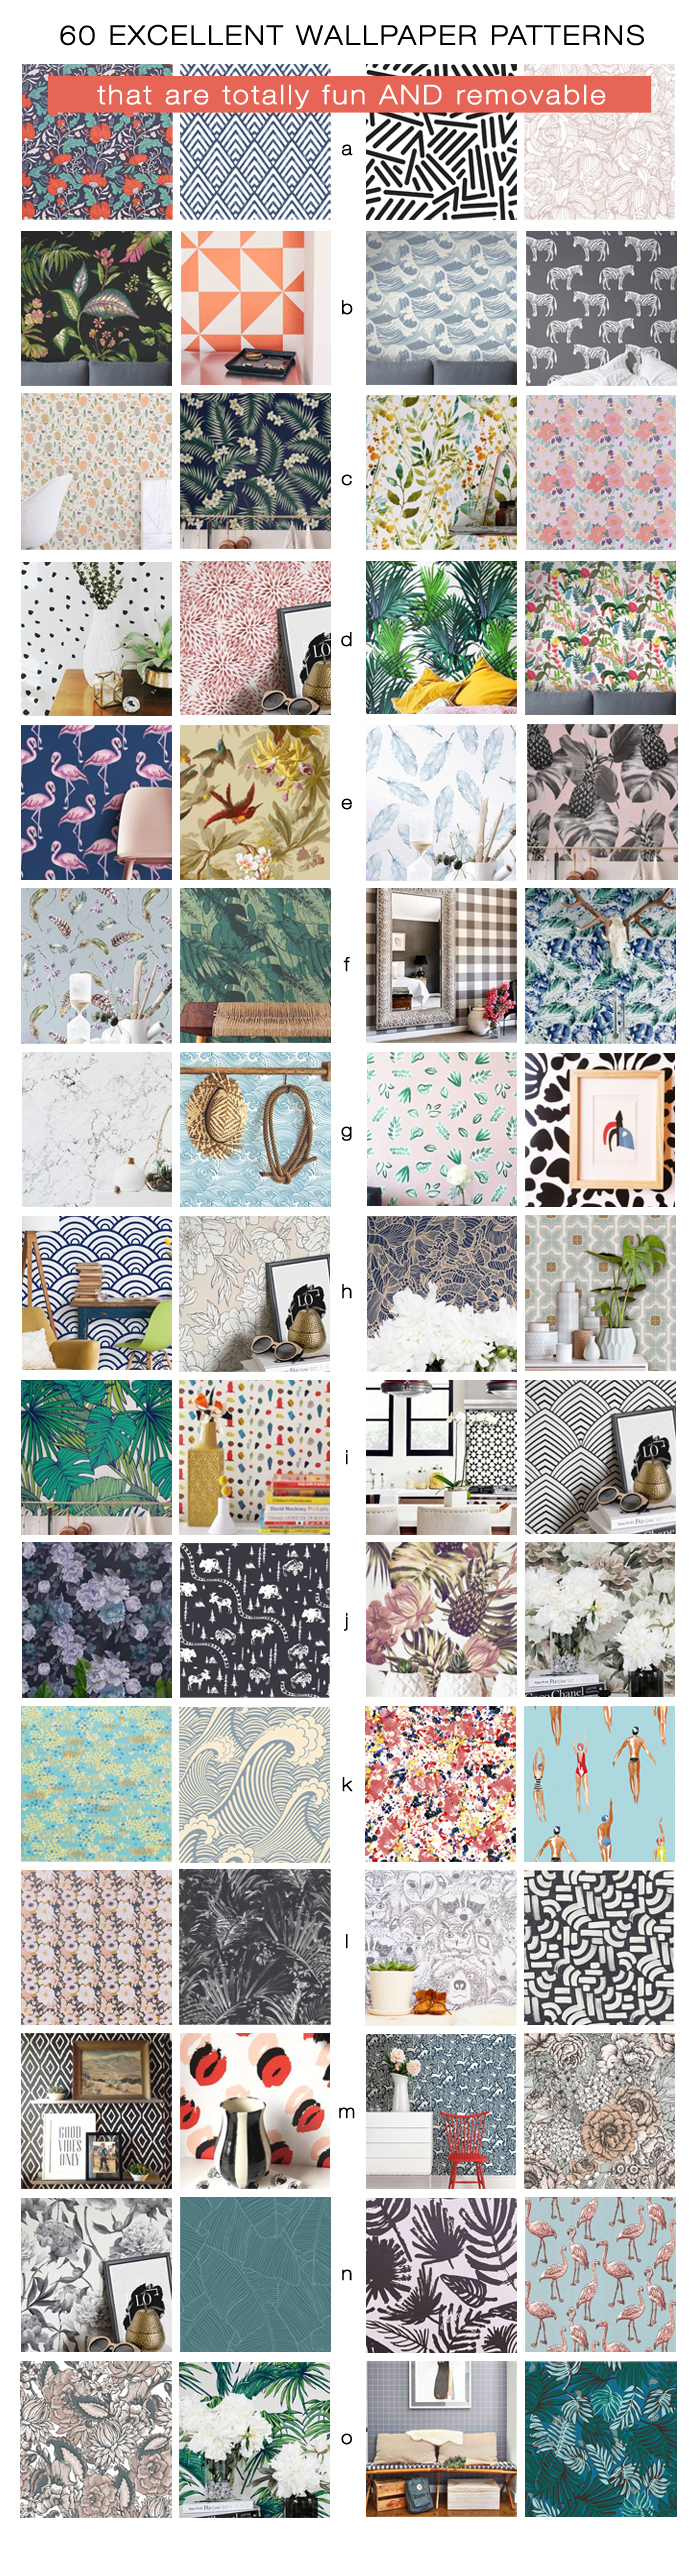 60 Excellent Wallpaper Patterns that are totally fun and removable